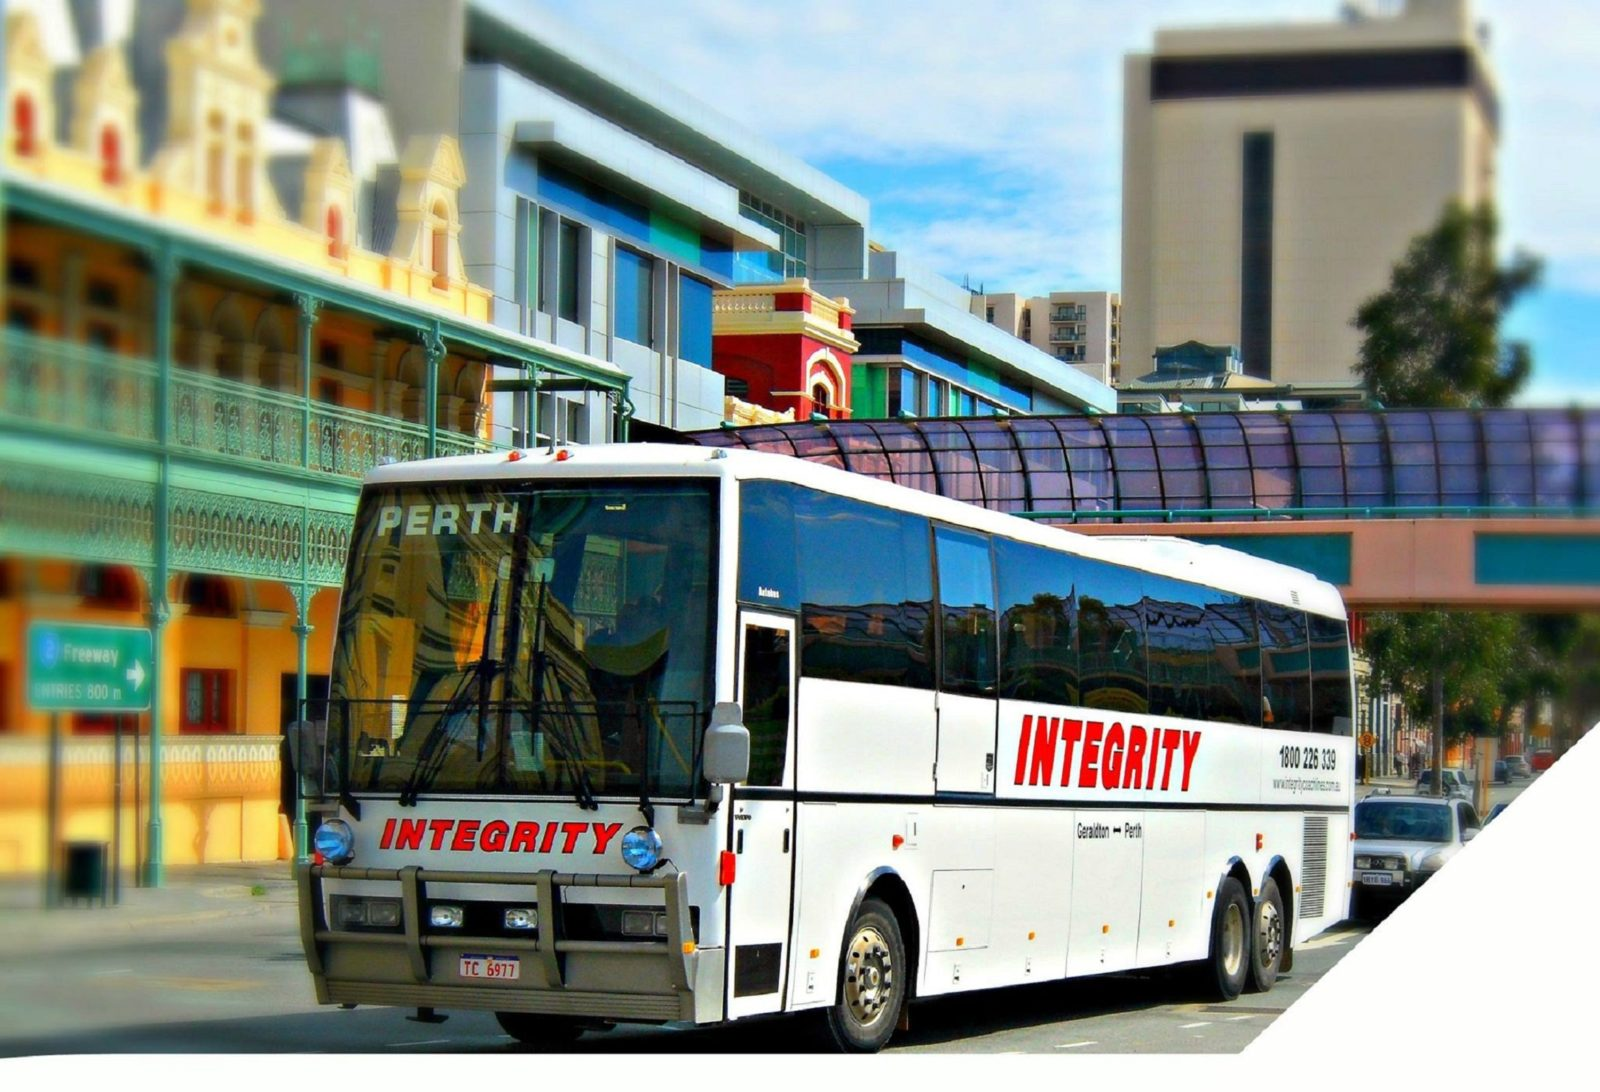 Integrity Coach Lines, Perth, Western Australia